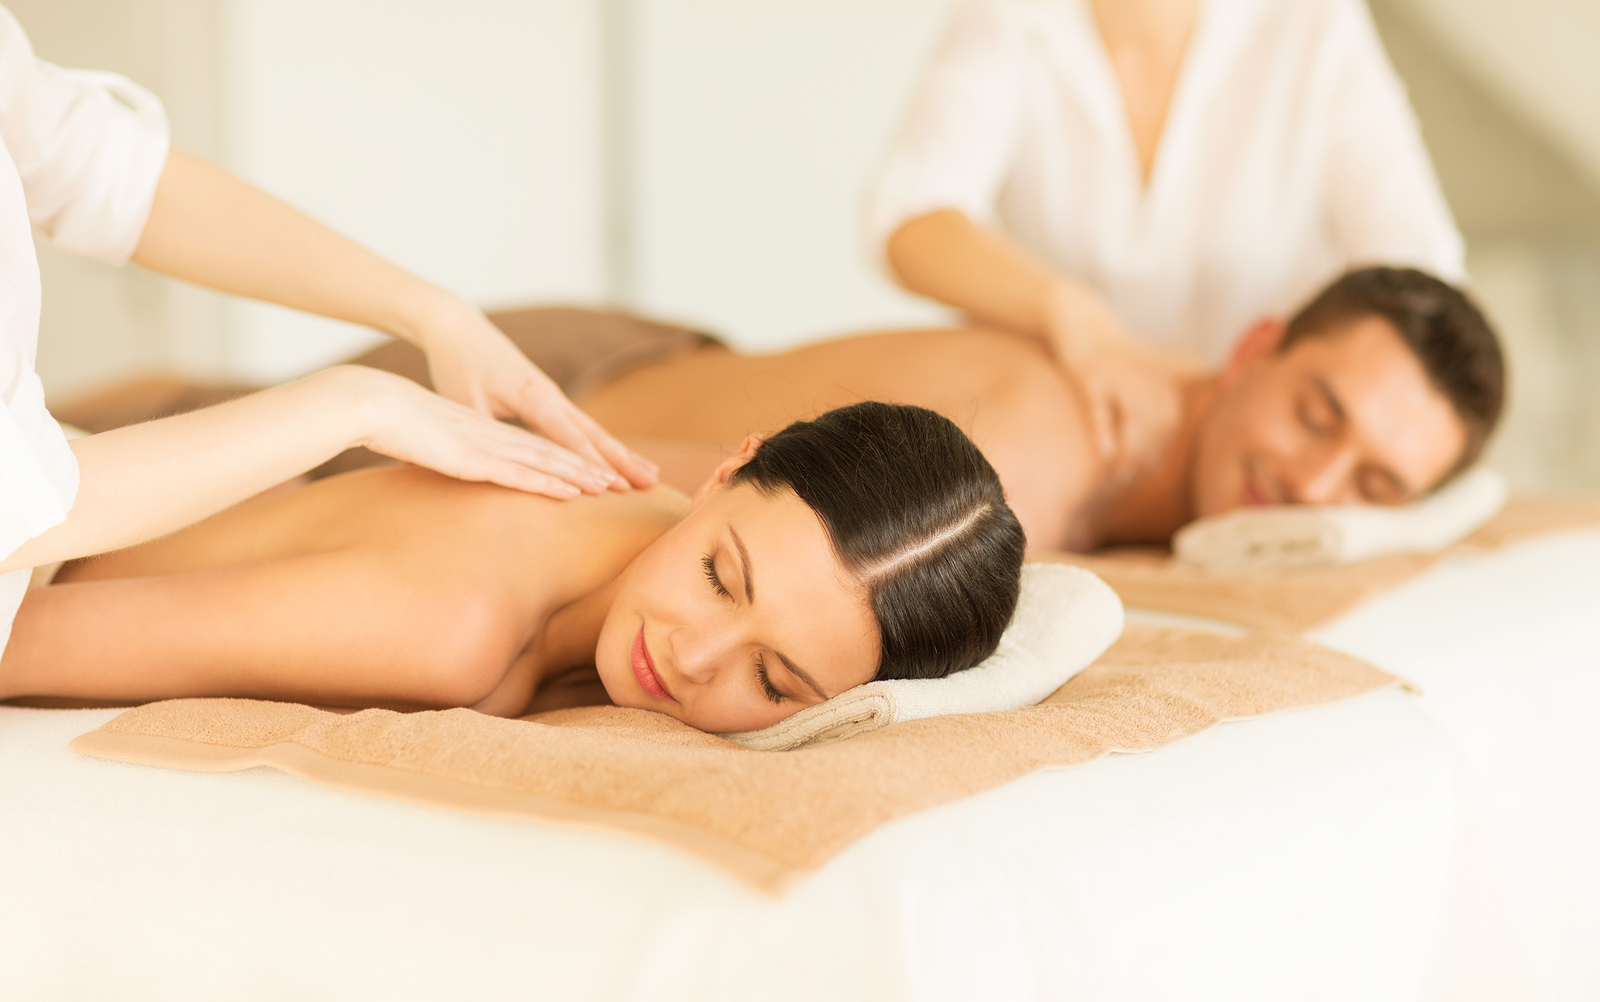 Benefits of Thai Massage And Precautions to Follow